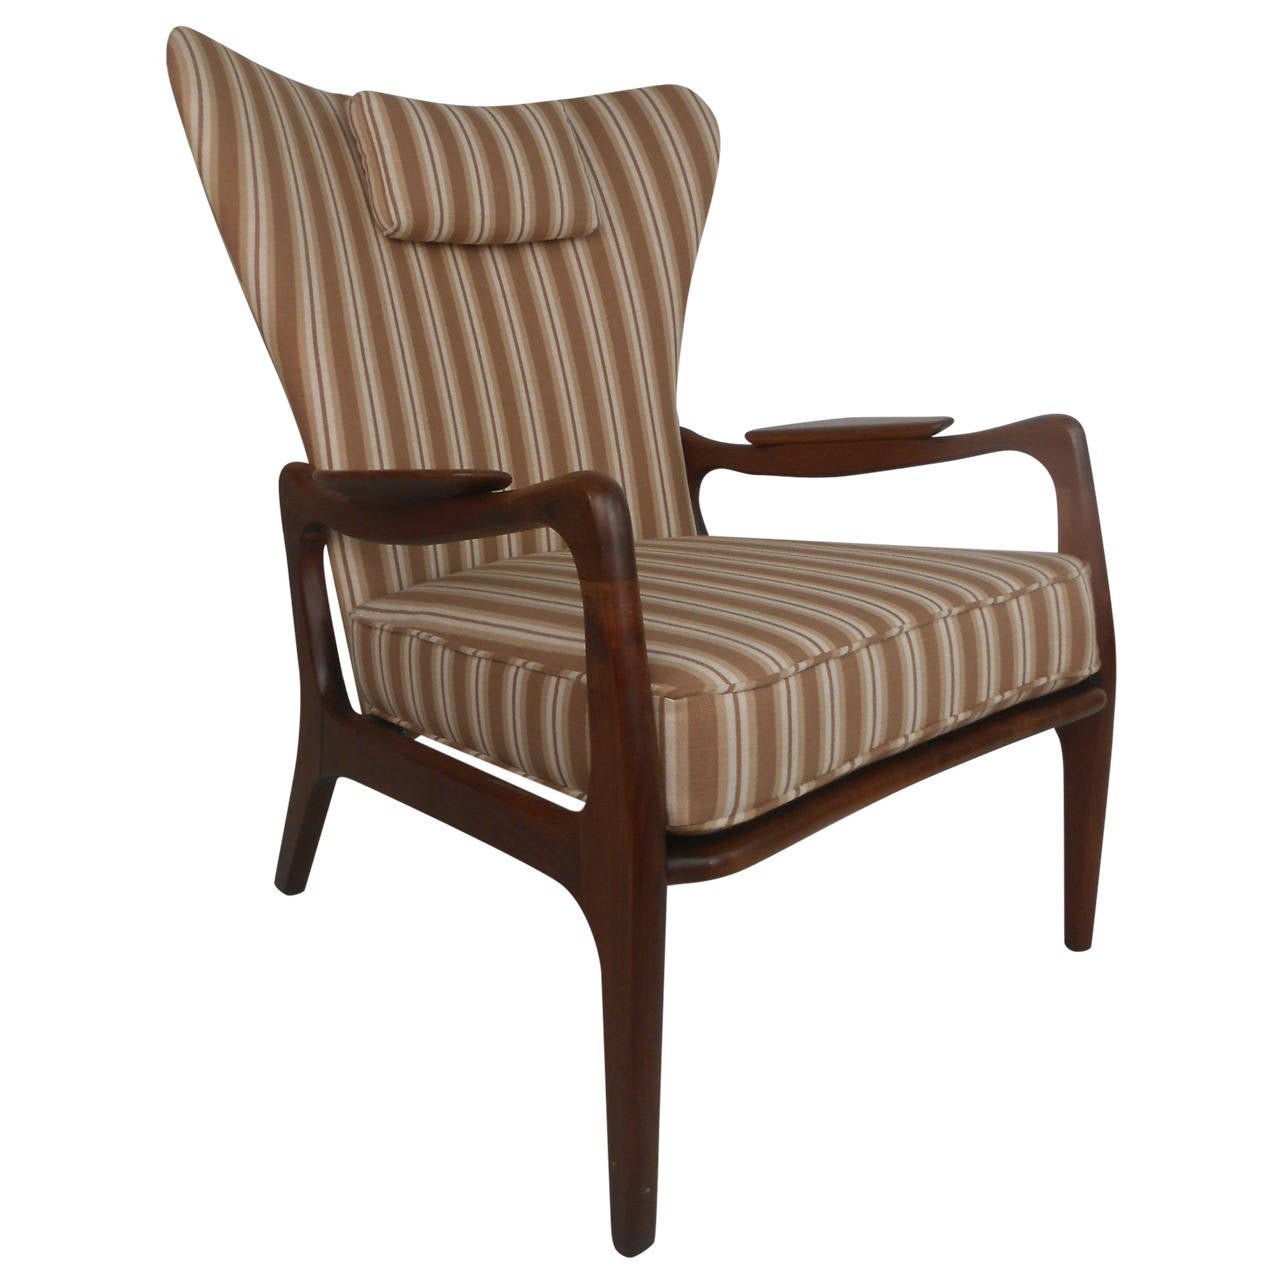 adrian pearsall chair designs rental tables and chairs wingback lounge at 1stdibs